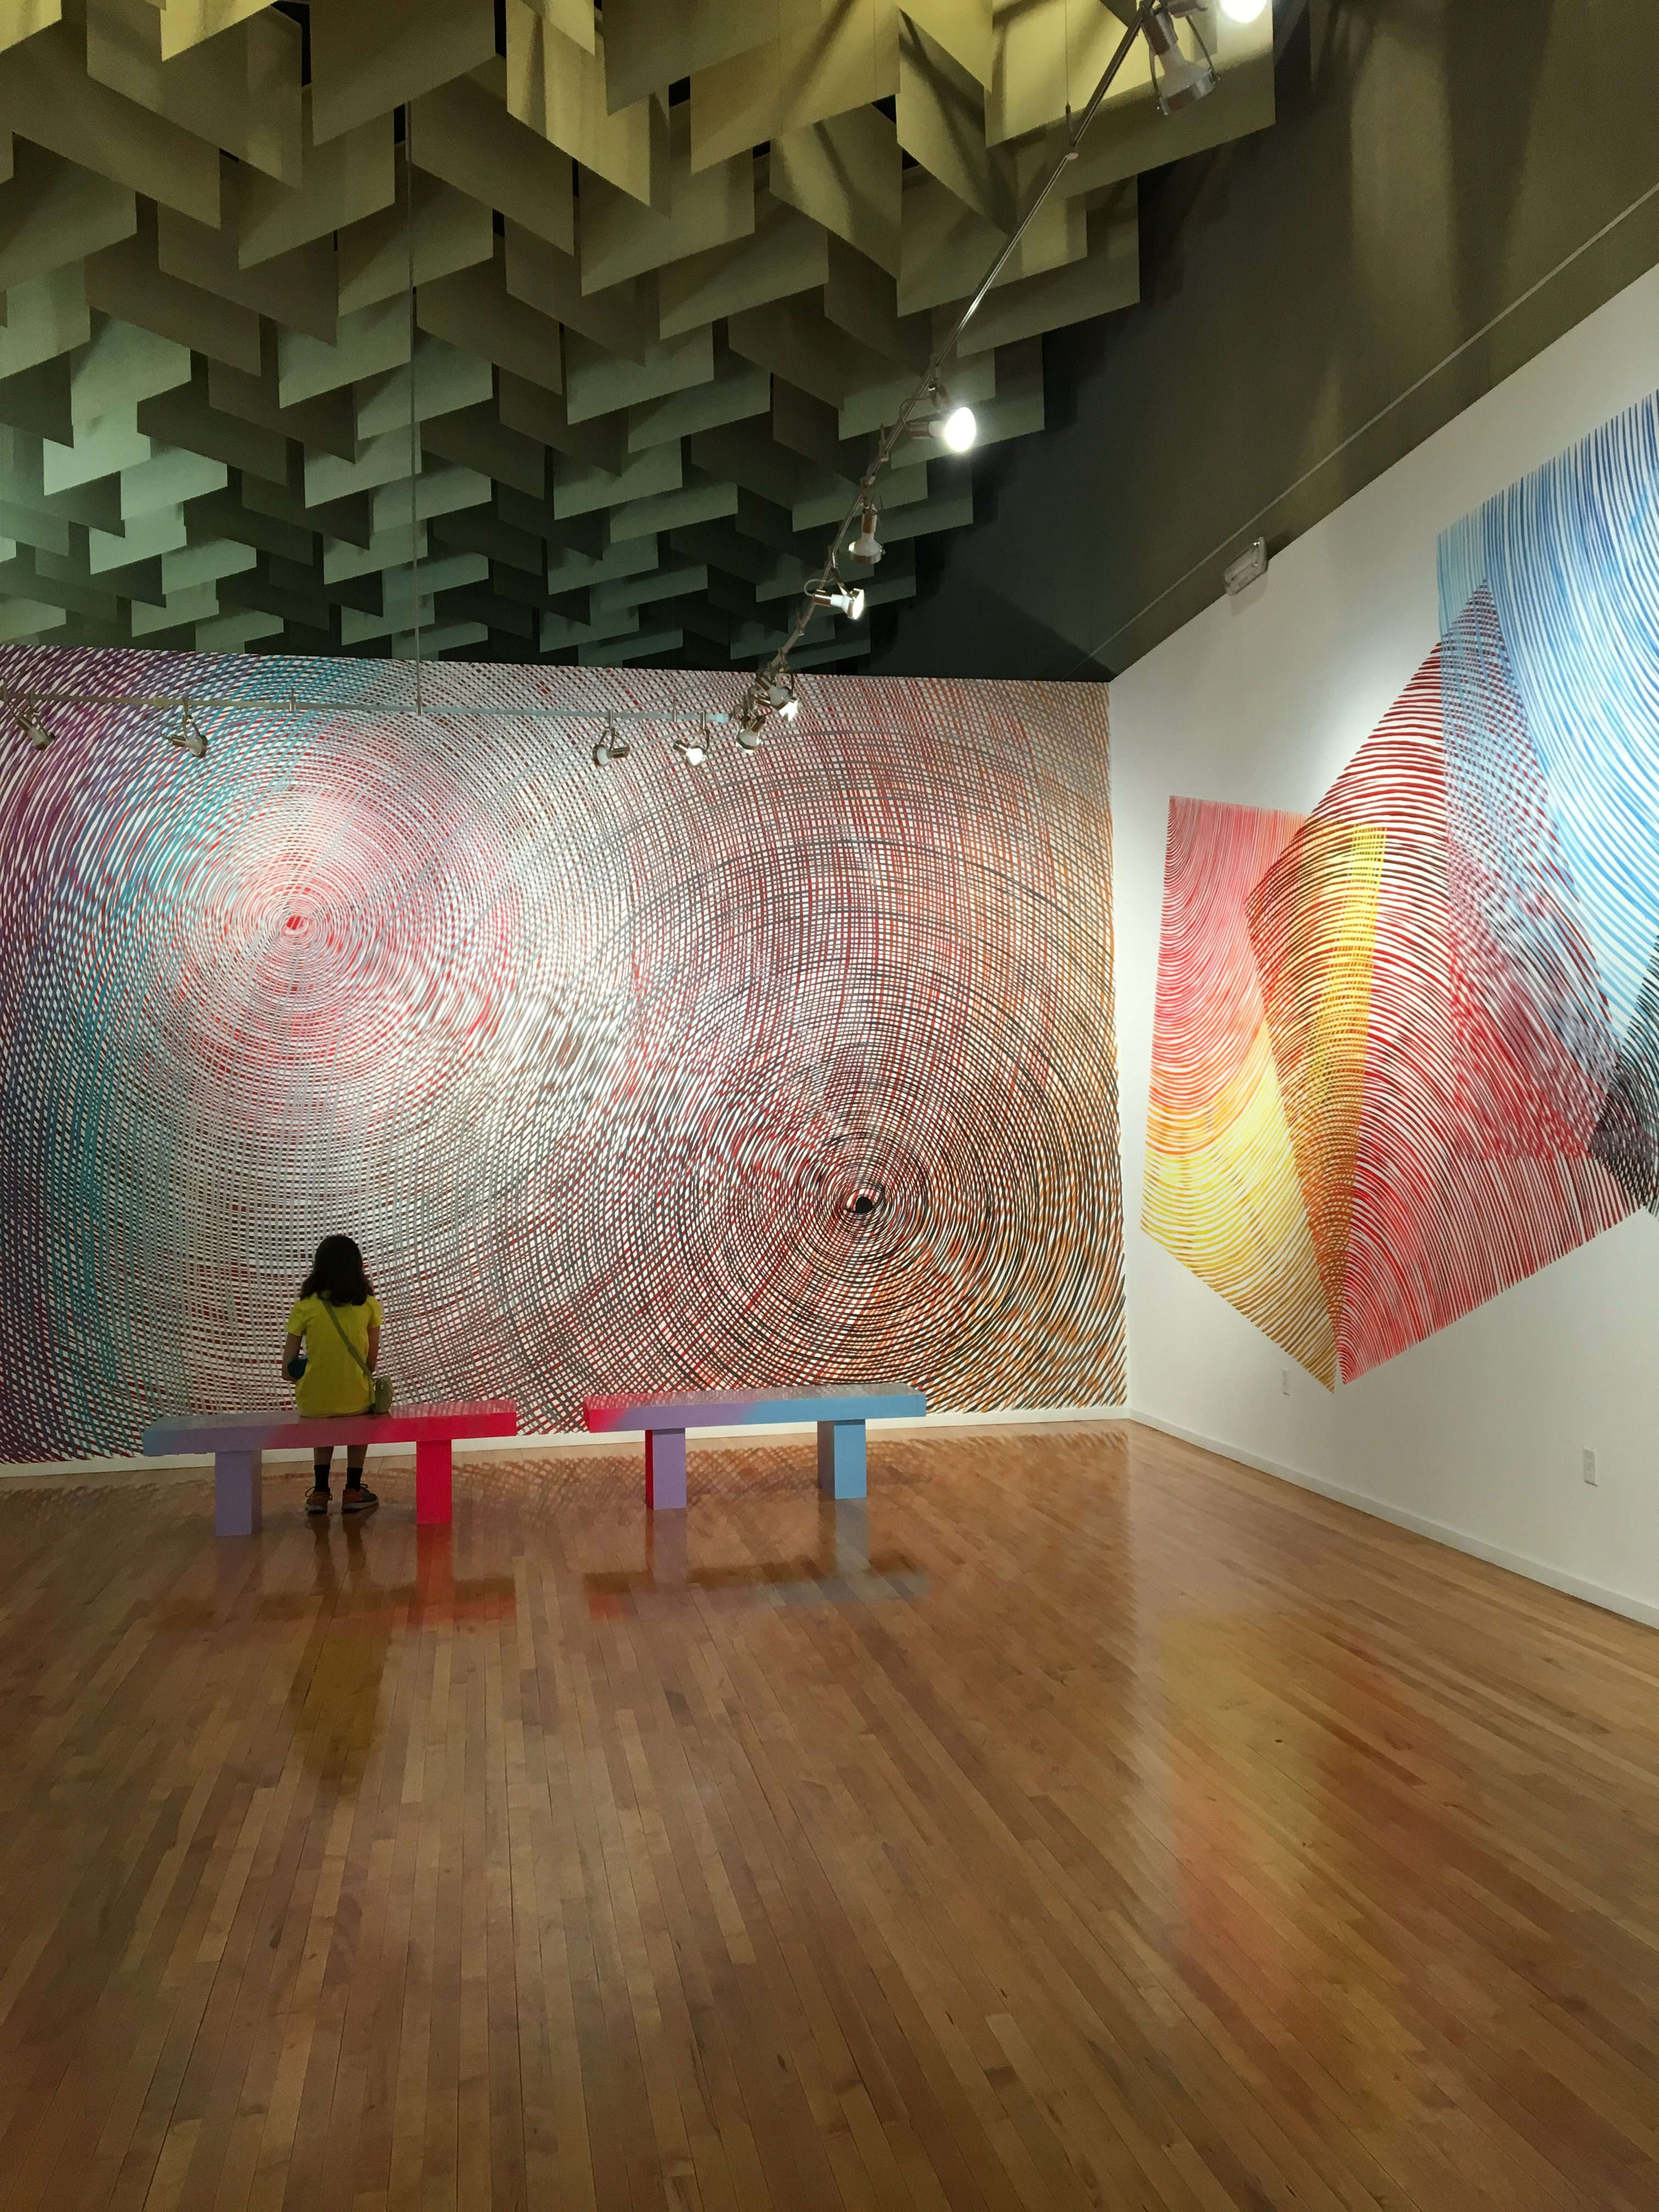 Writing Youth Camp at the Barrick Museum https://www.unlv.edu/event/andrew-schoultz-process-every-movement-counts?delta=0